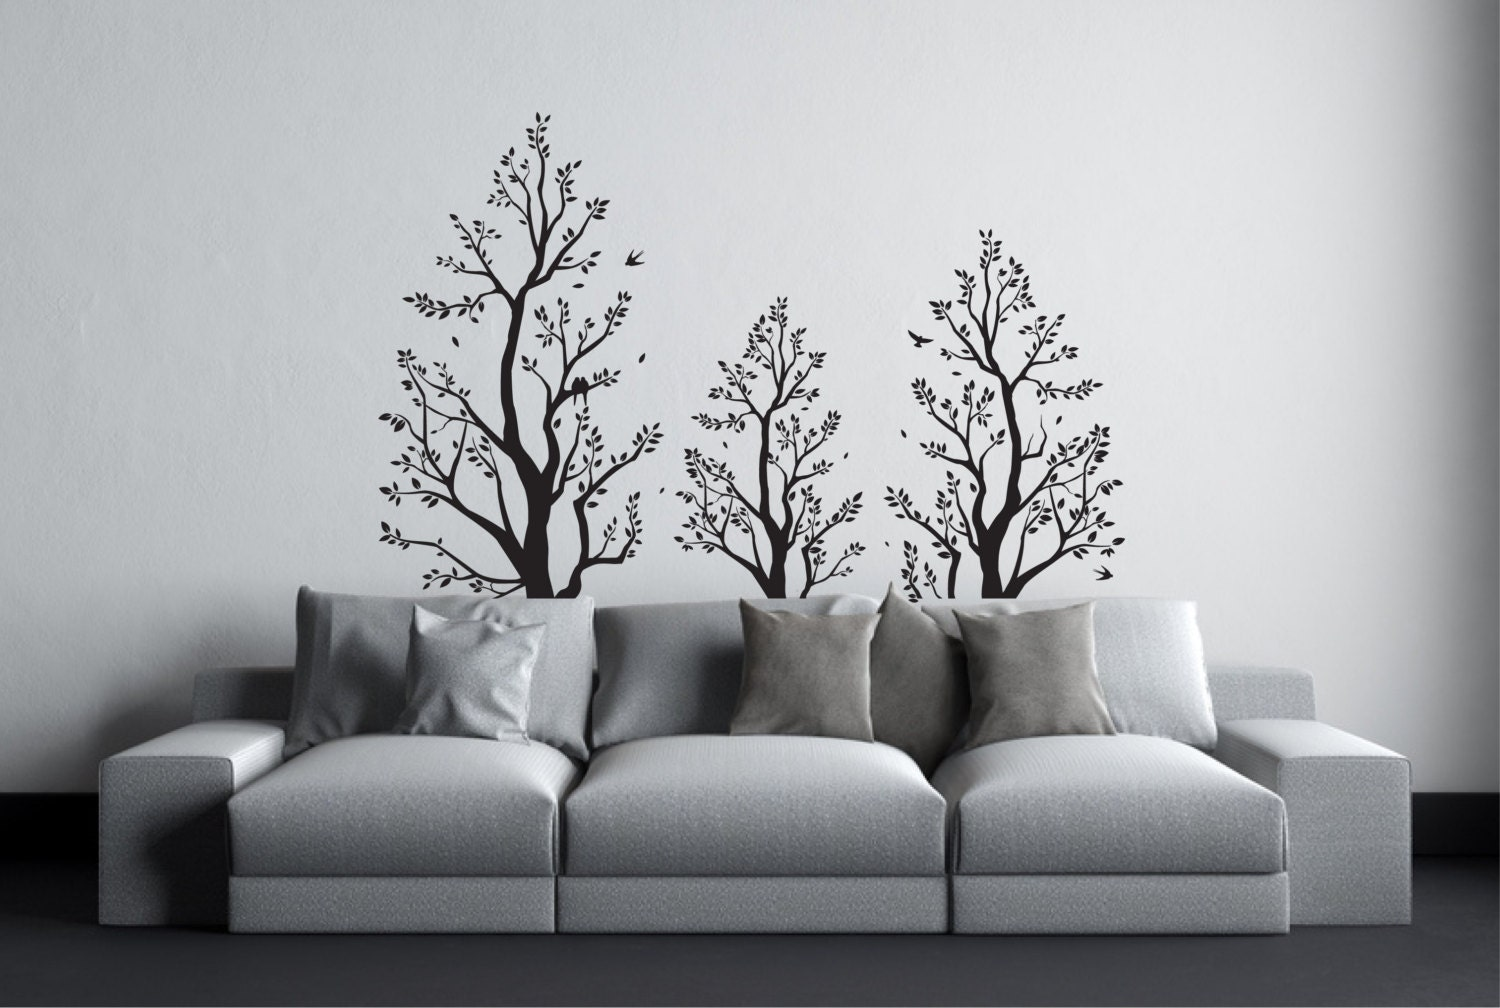 tree wall sticker with birds above bed decor over bed wall. Black Bedroom Furniture Sets. Home Design Ideas